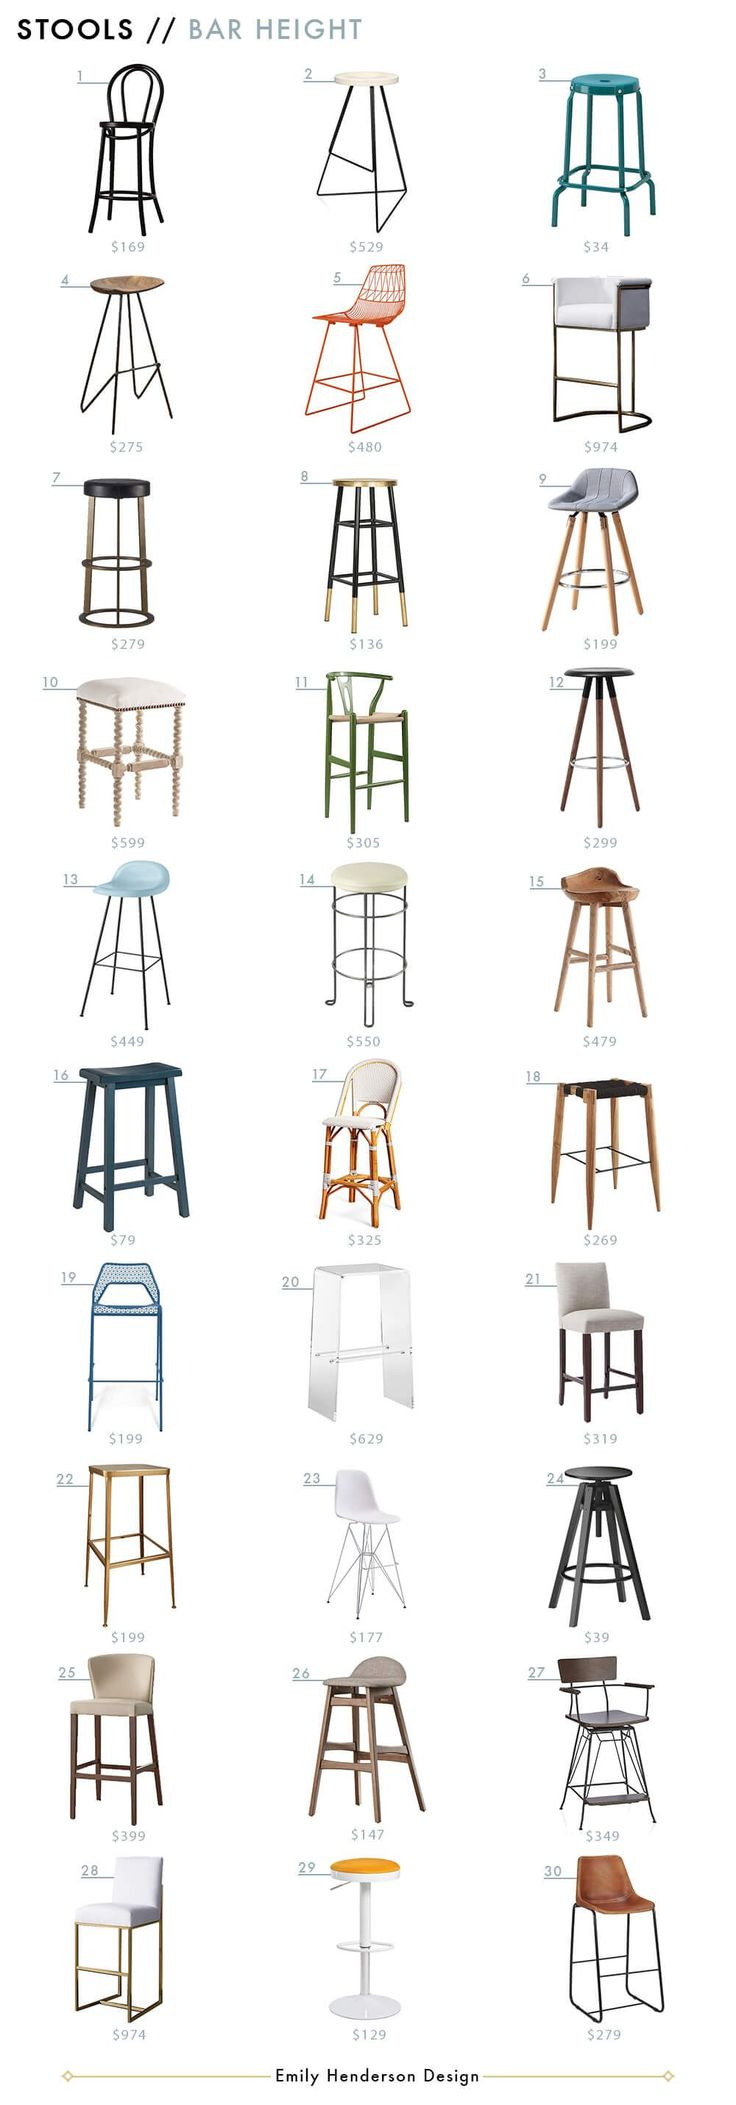 Mid-century modern chair ideas for your new home | www.essentialhome.eu/blog